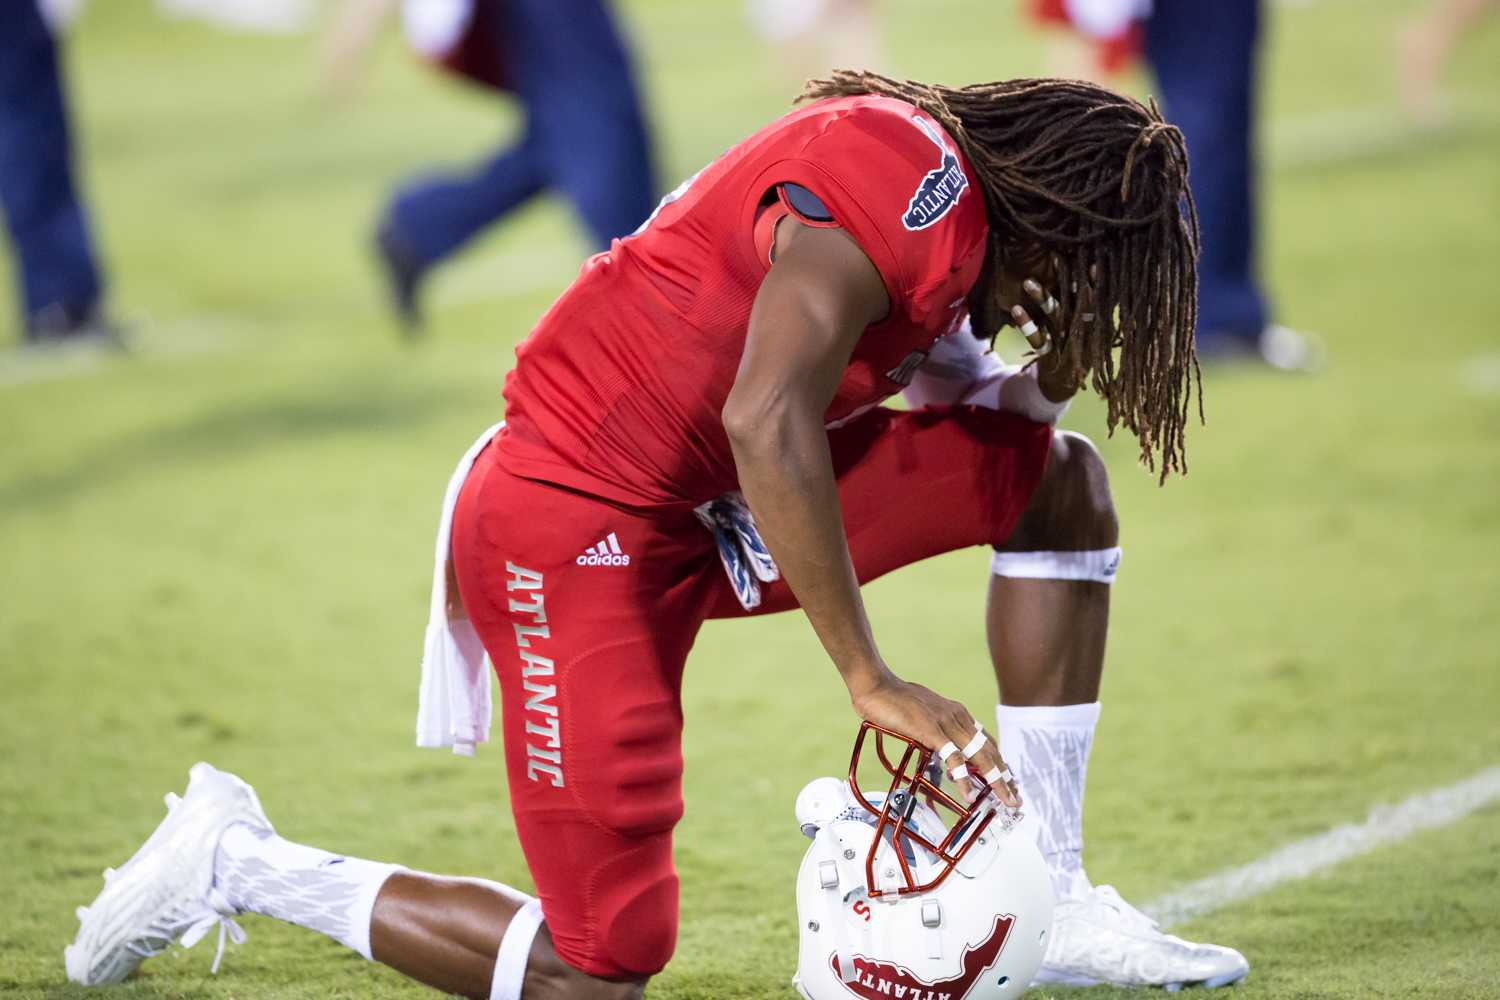 FAU redshirt sophomore cornerback Ronnie Scott (5) goes down on one knee to pray before the start of the game against the University of Miami Hurricanes. The Hurricanes beat the Owls 44-20 Friday night. Brandon Harrington | Contributing Photographer